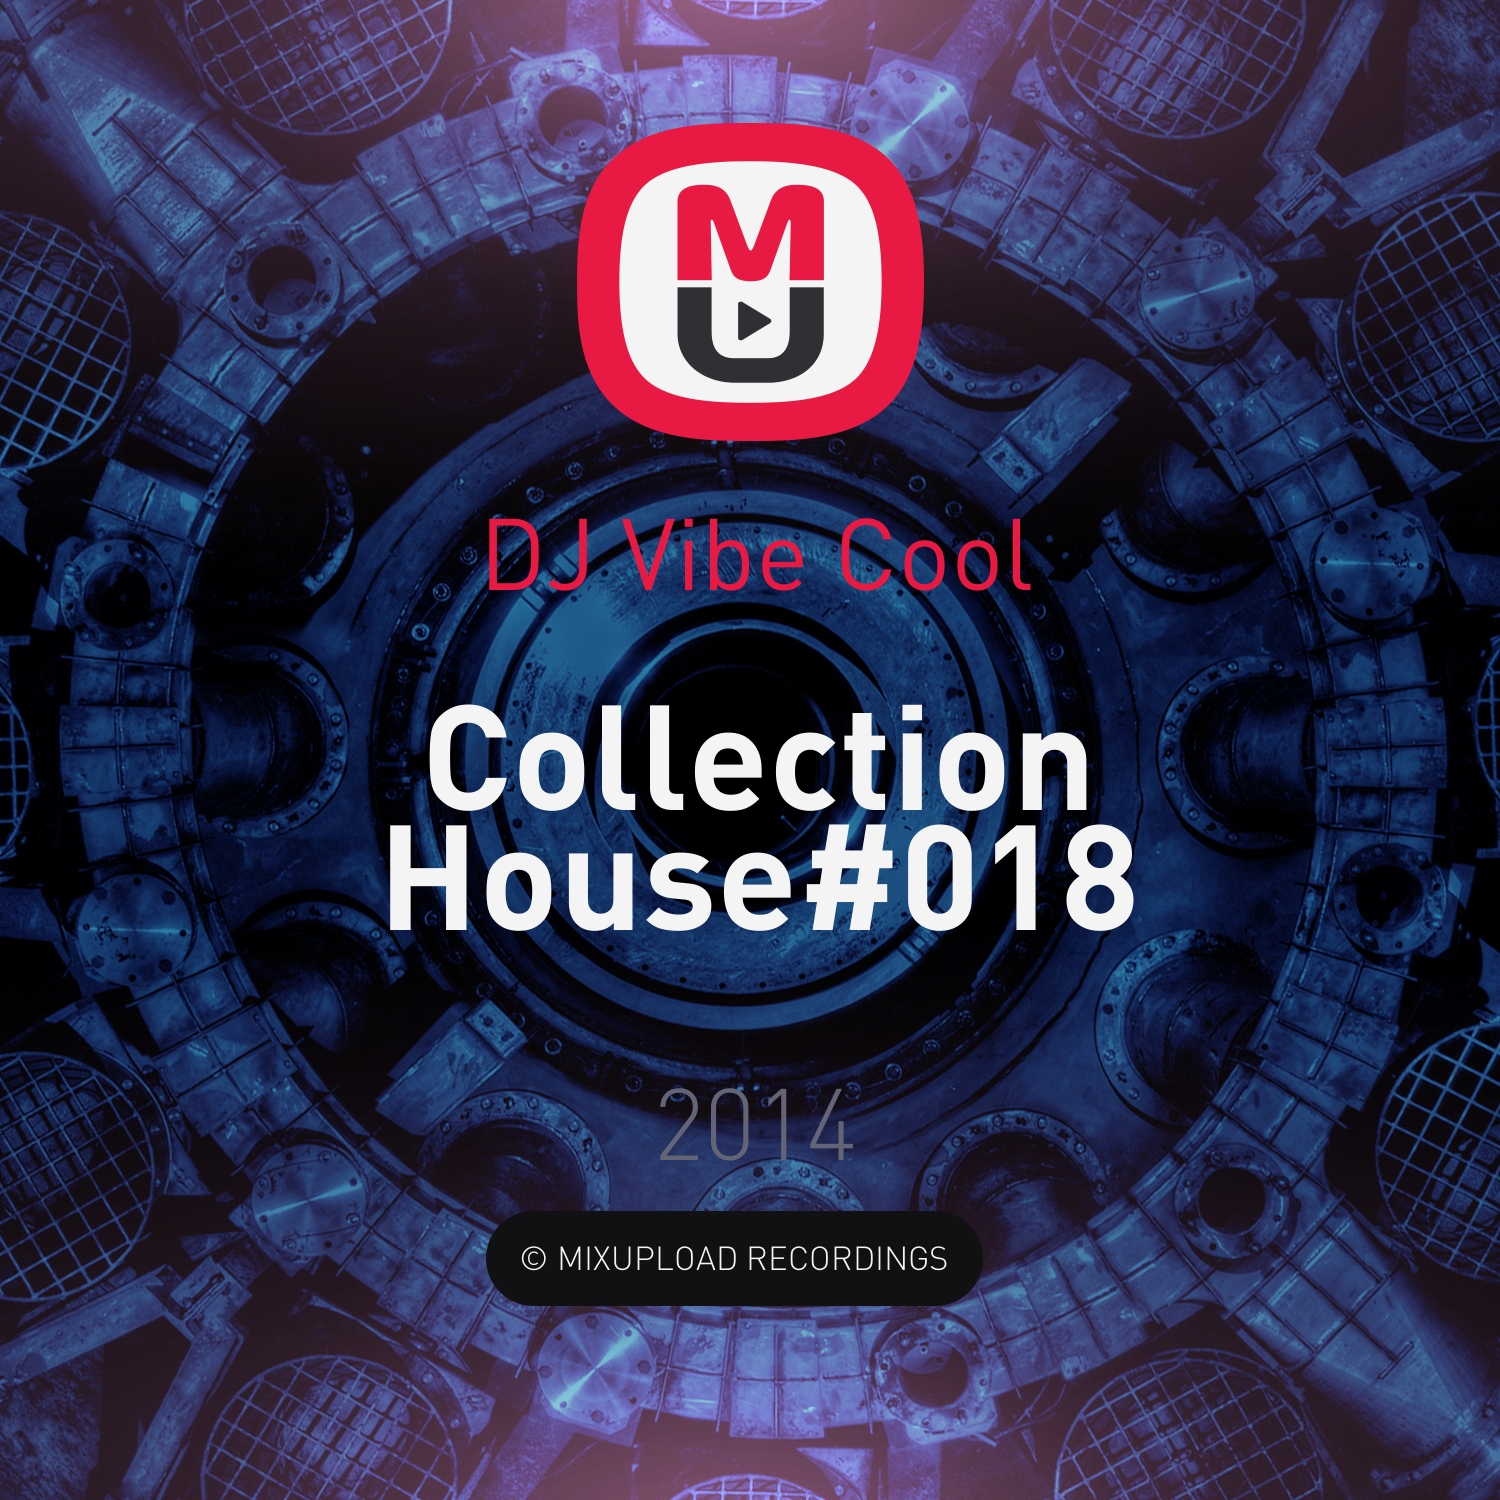 DJ Vibe Cool - Collection House#019 ()